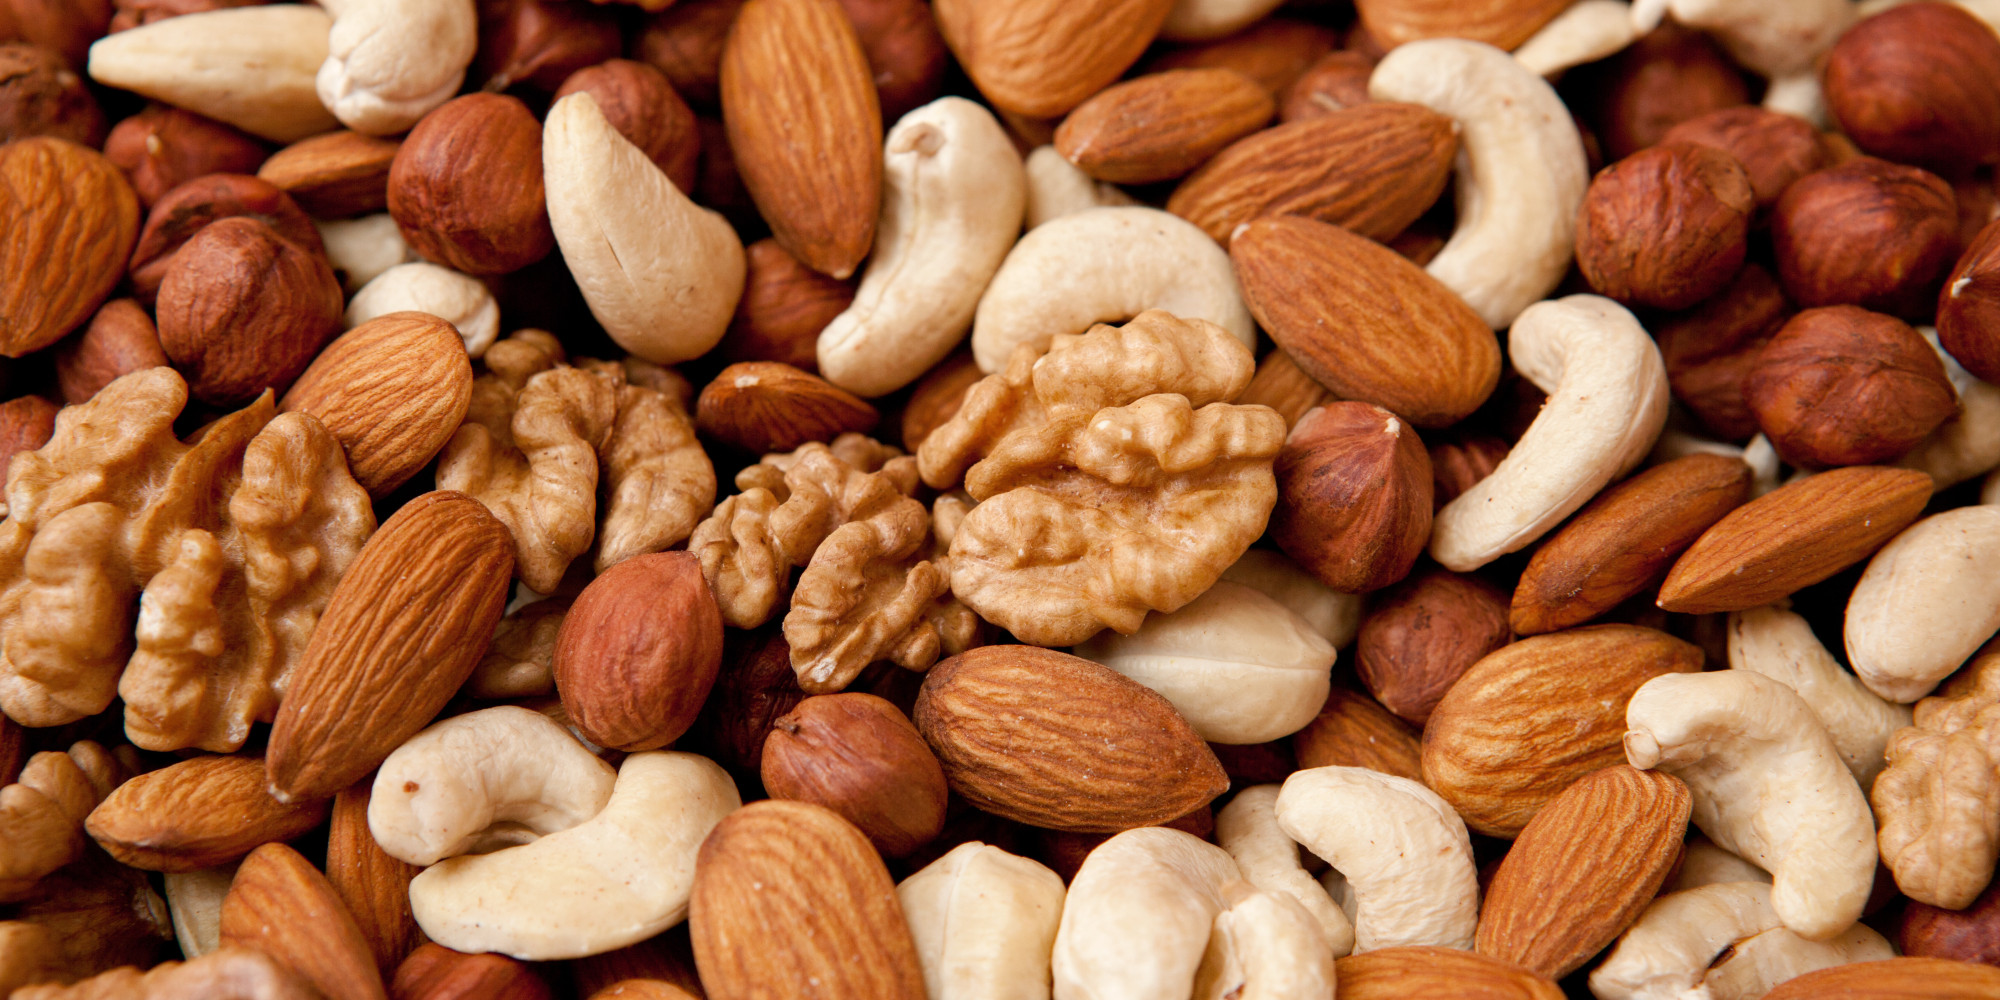 http://quantitativemedicine.net/2015/05/19/why-do-nuts-prevent-heart-attacks/